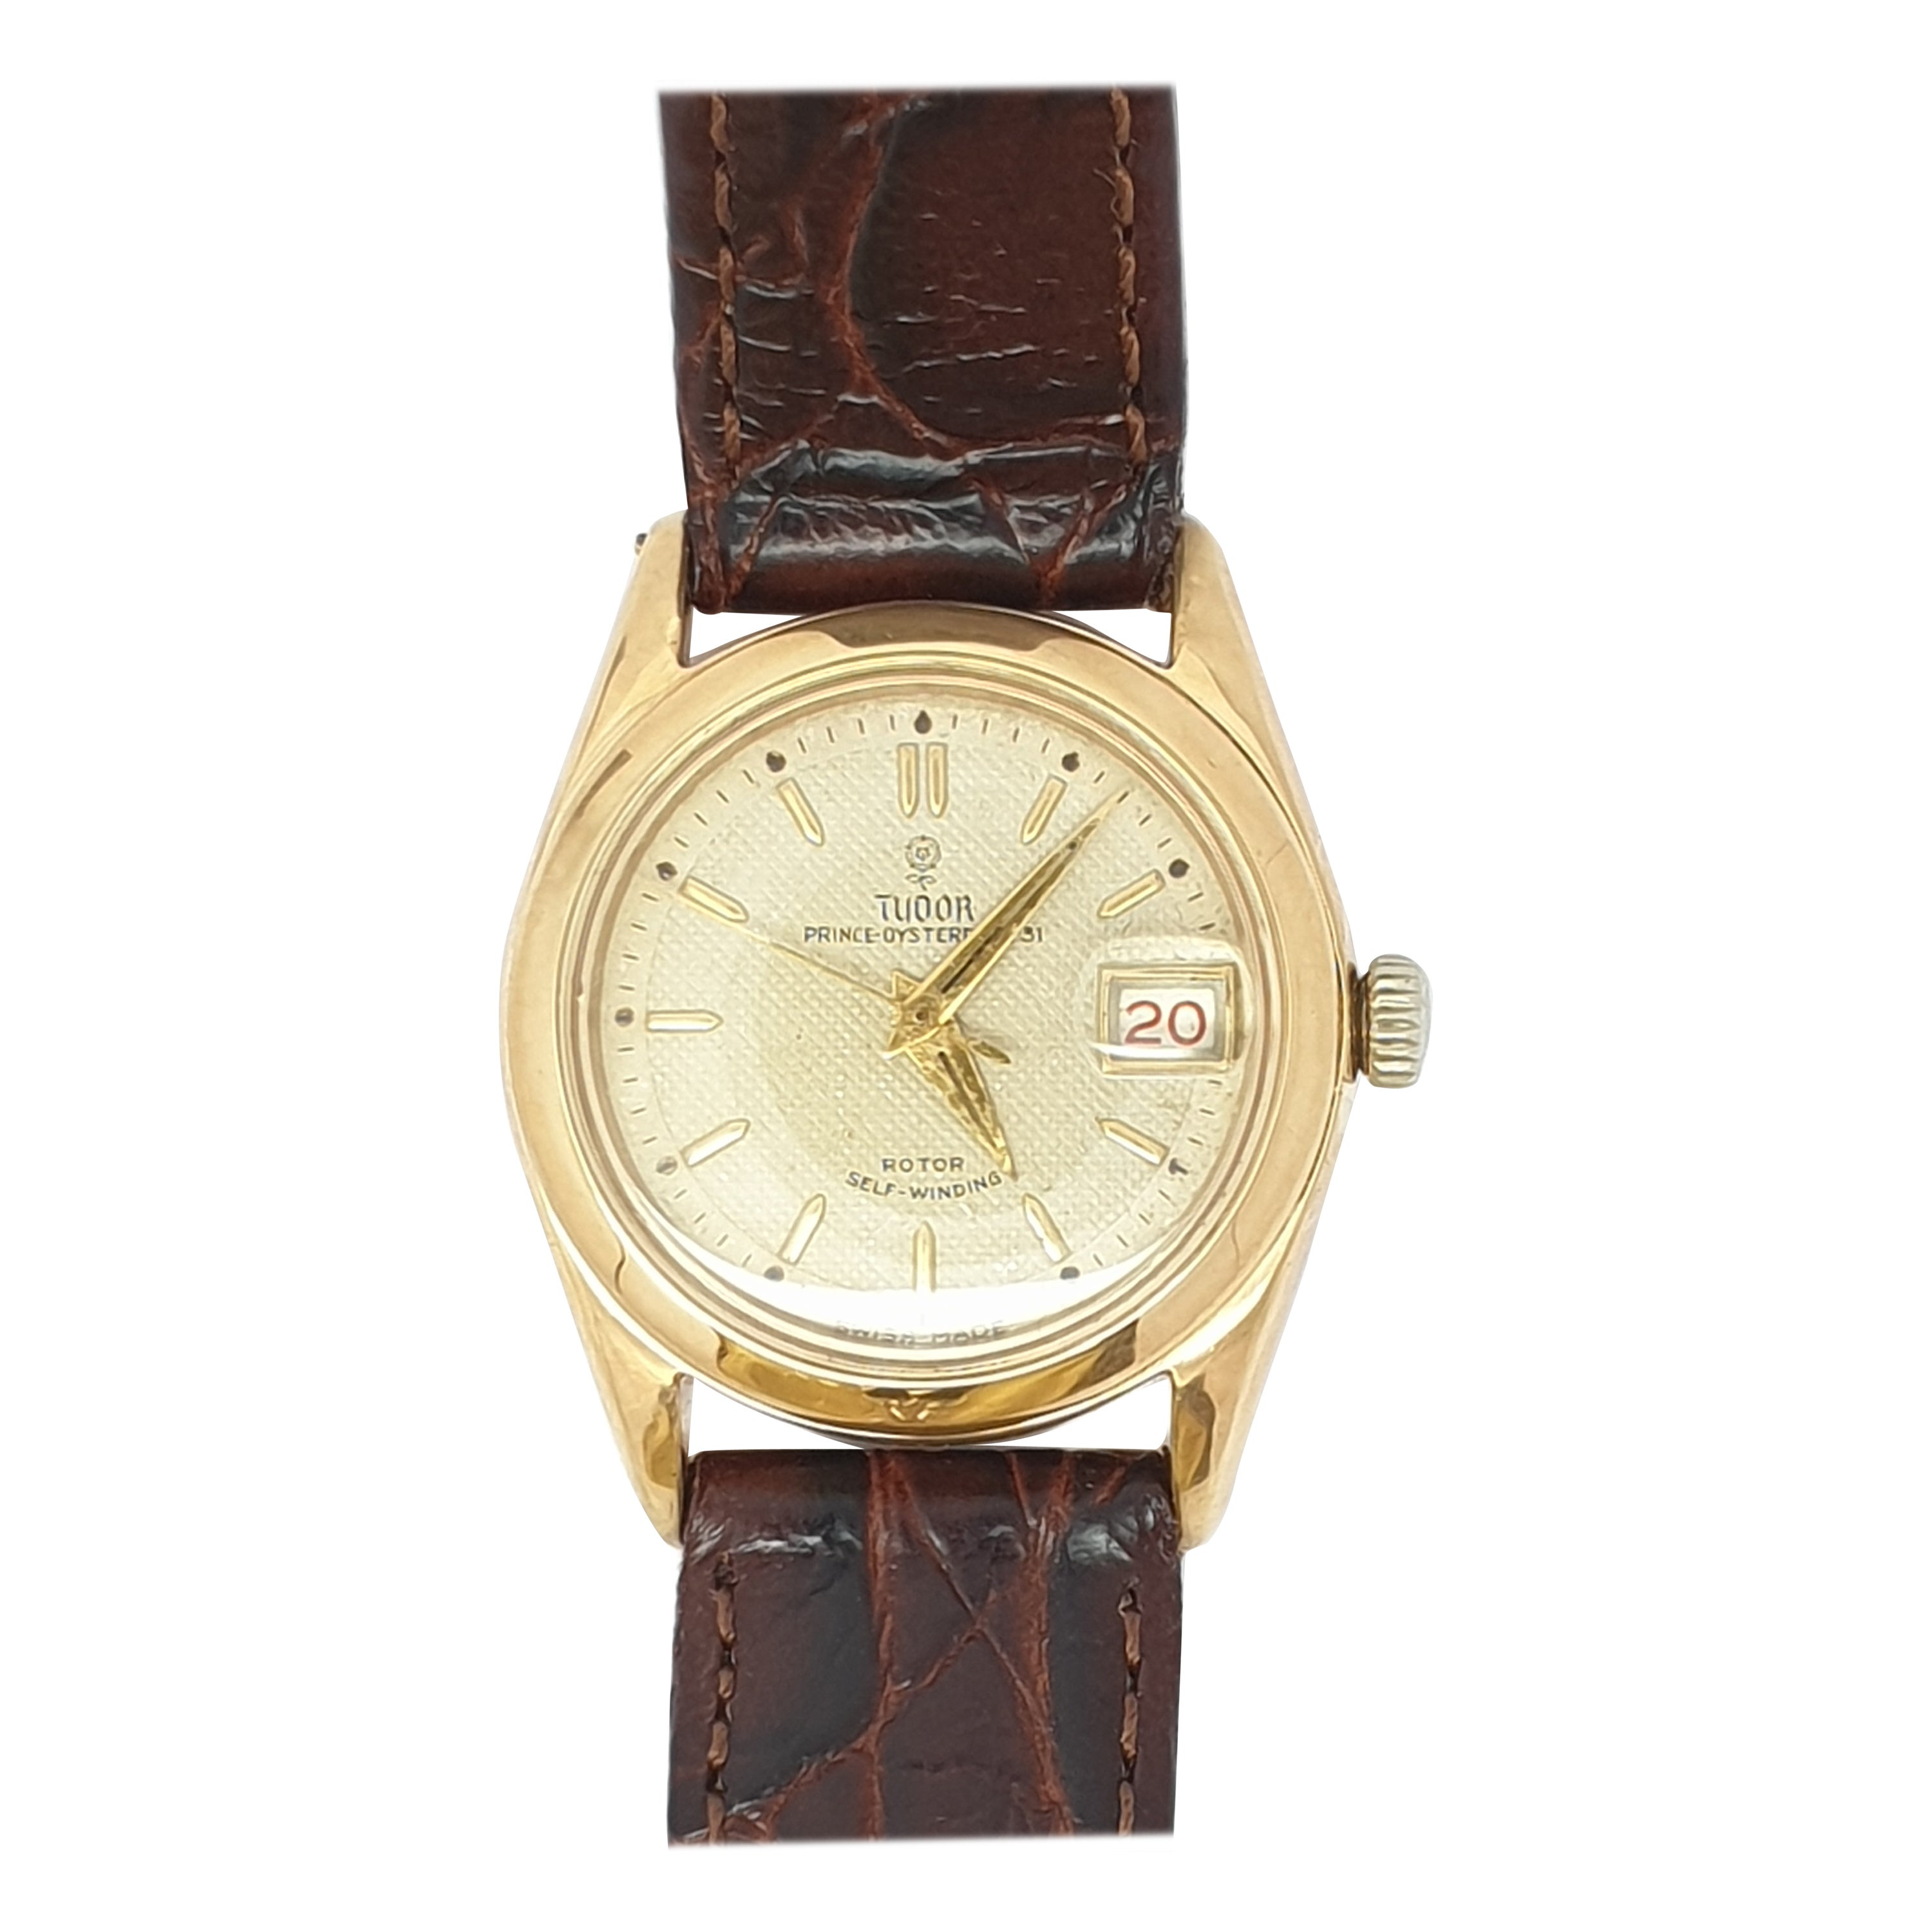 Vintage Tudor Oyster Prince 31 Automatic Watch